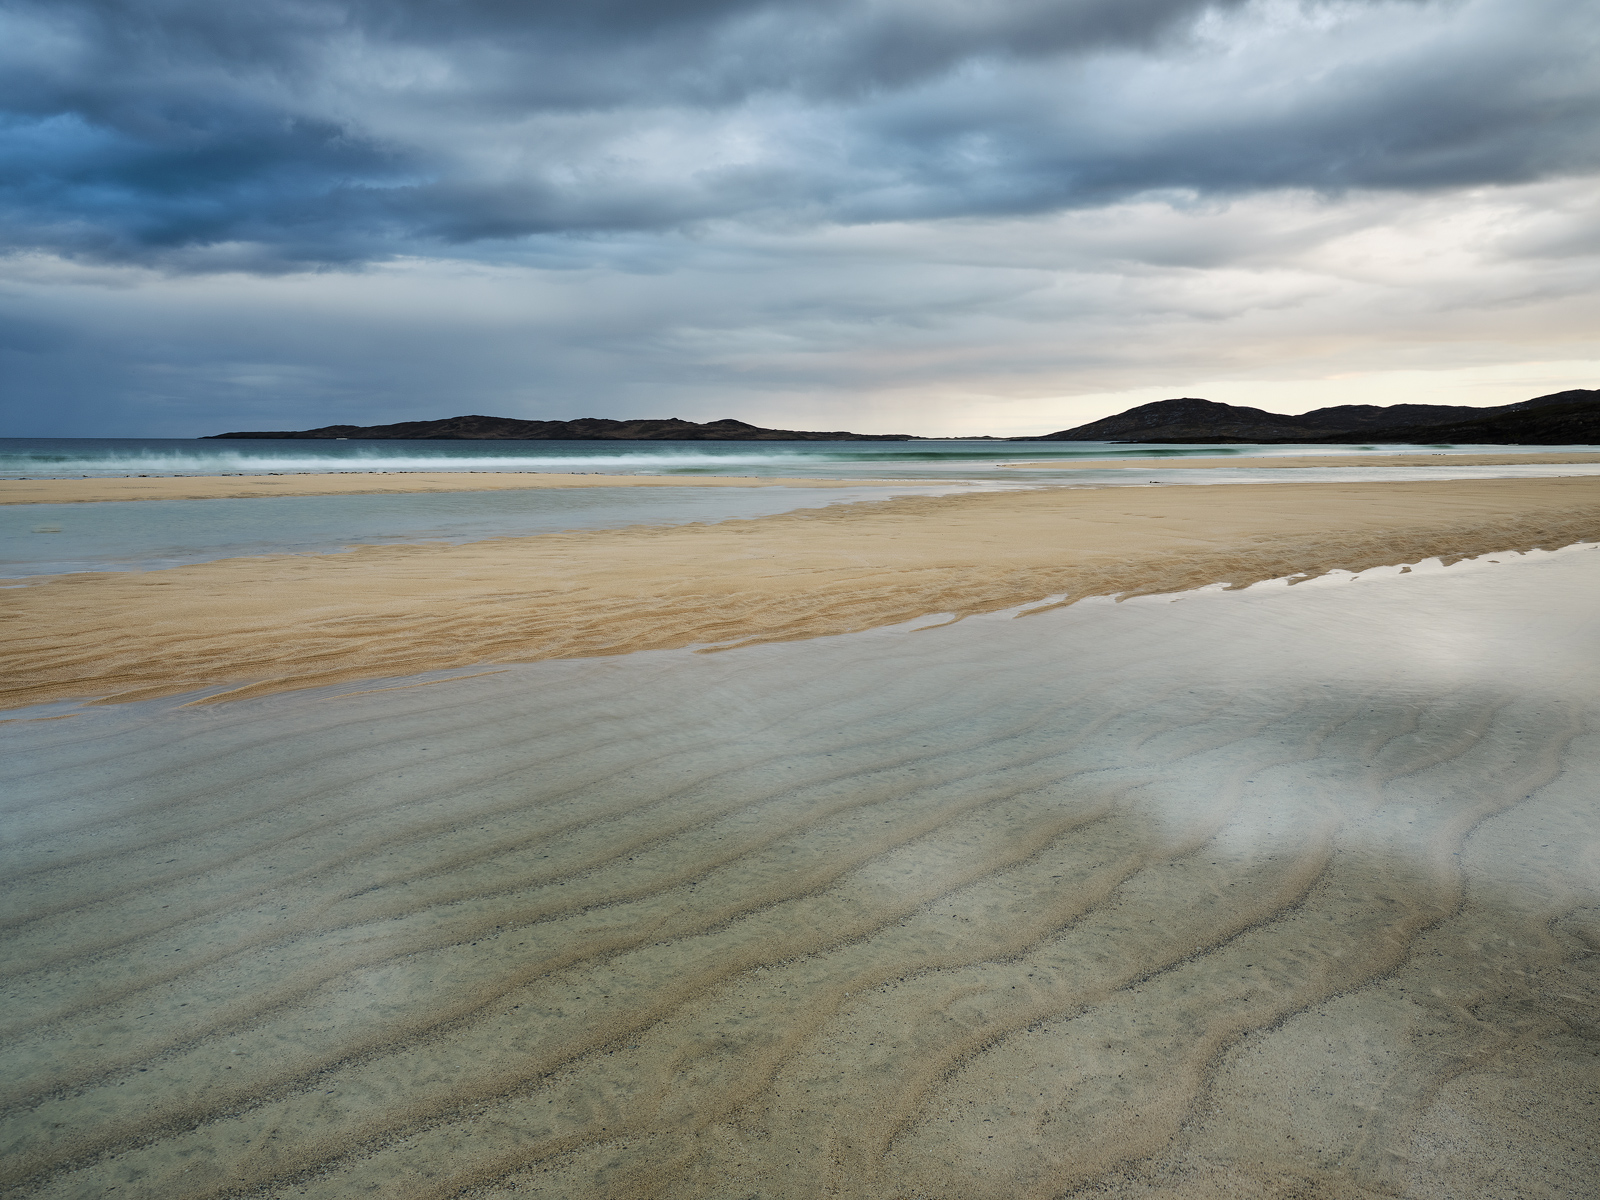 The deeply furrowed beach at Traigh Lar slowly fills with water at the return of the tide creating a beguiling mix of pale yellow sand and steely grey skies.